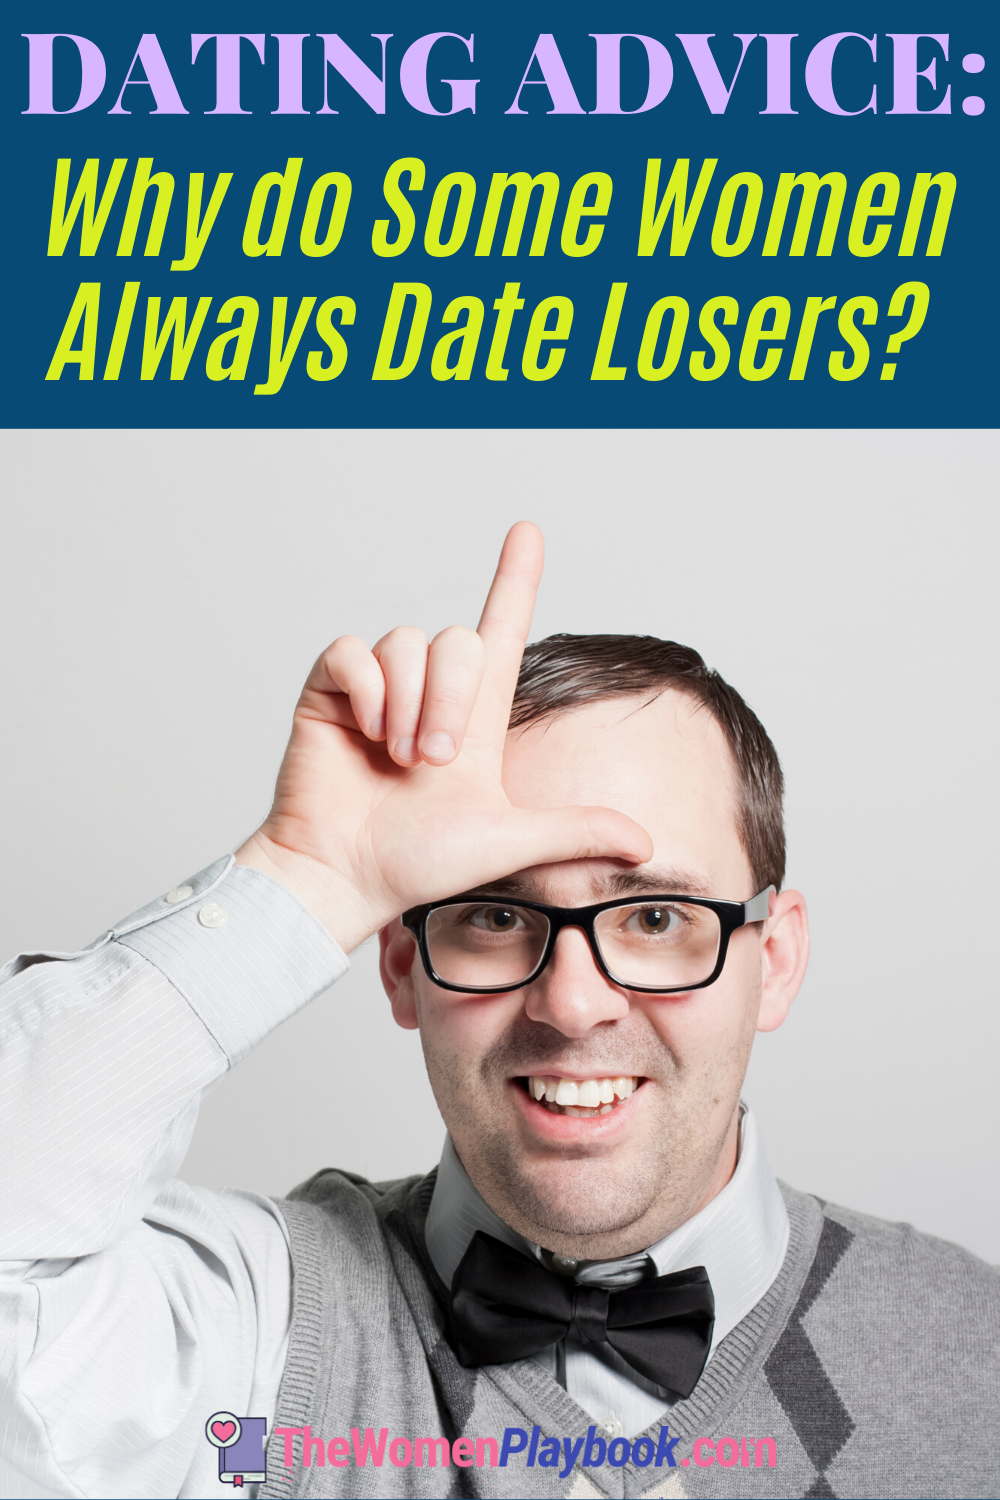 Dating advice for Women: Learn why some women always date